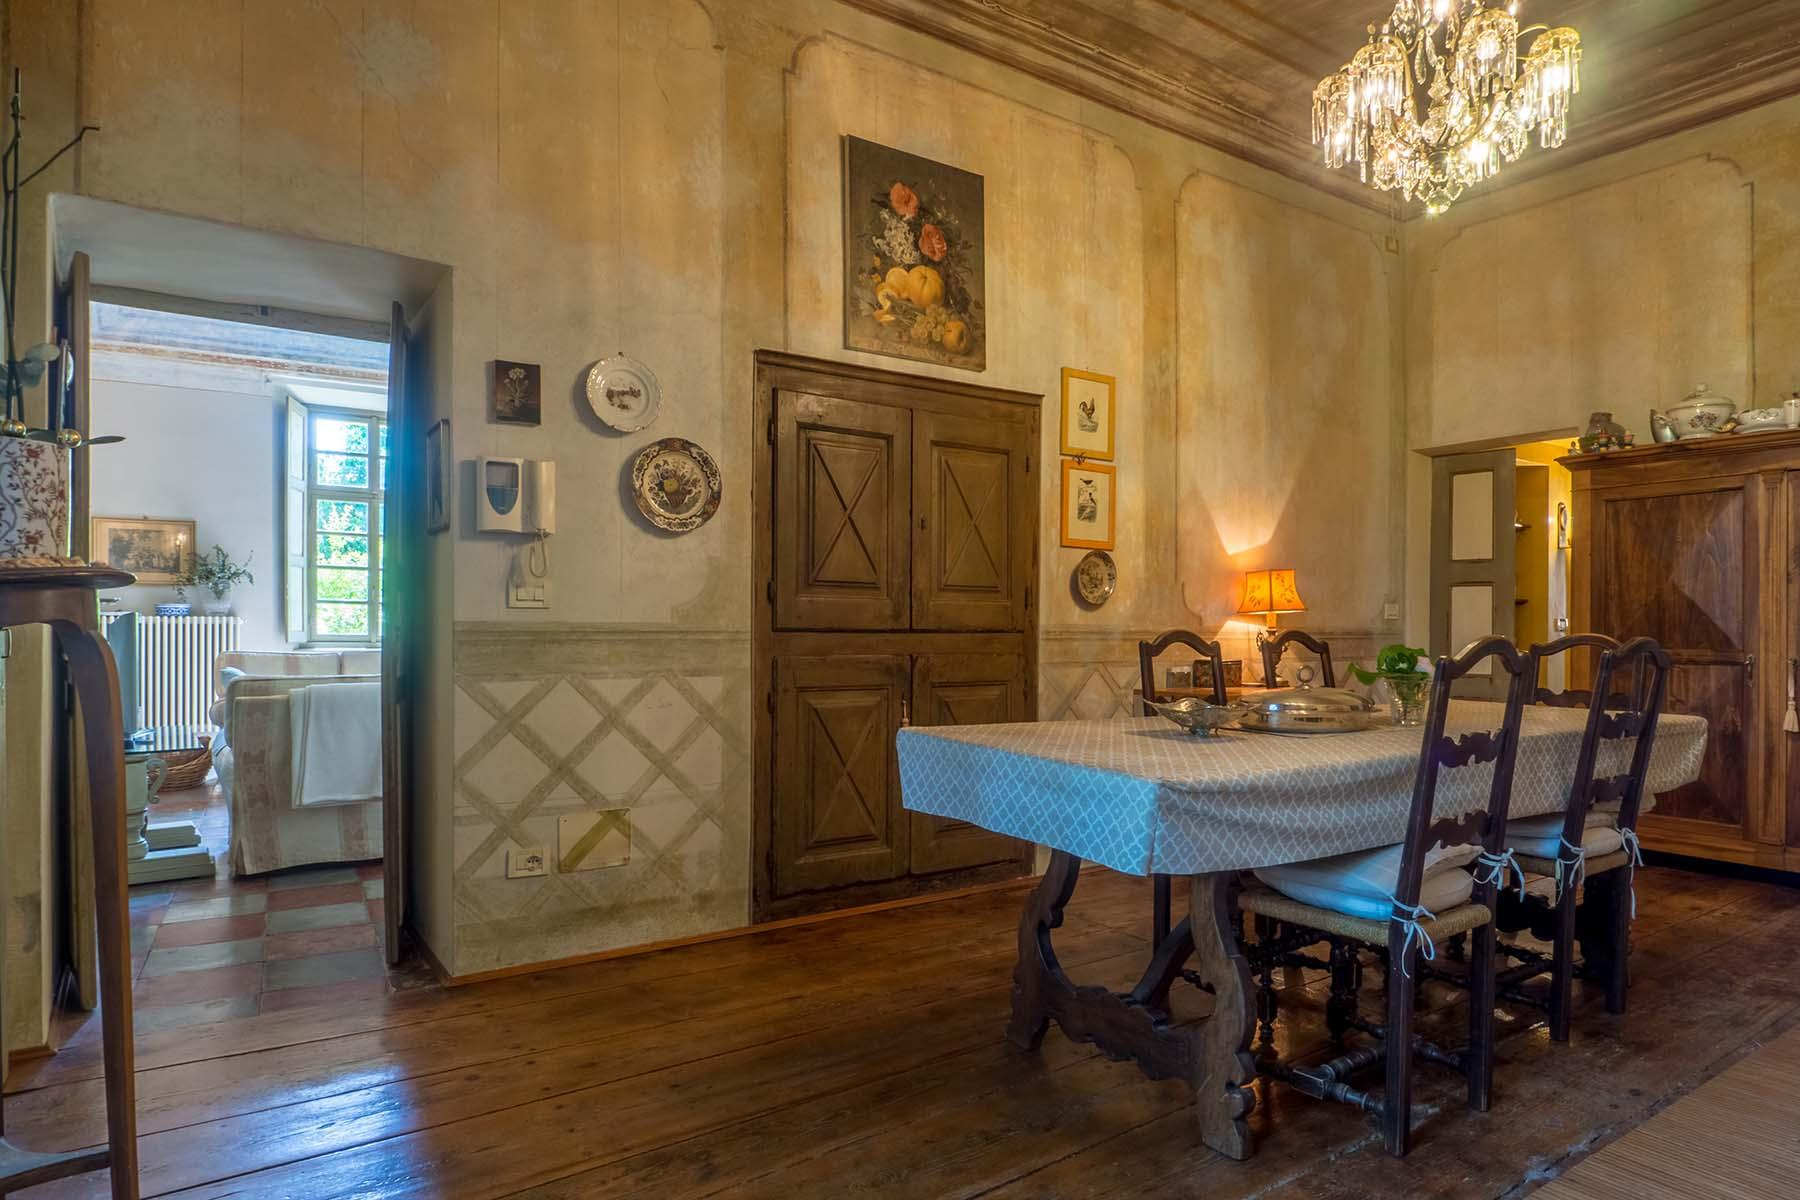 Enchanting historical villa in the heart of the Monferrato region - 3